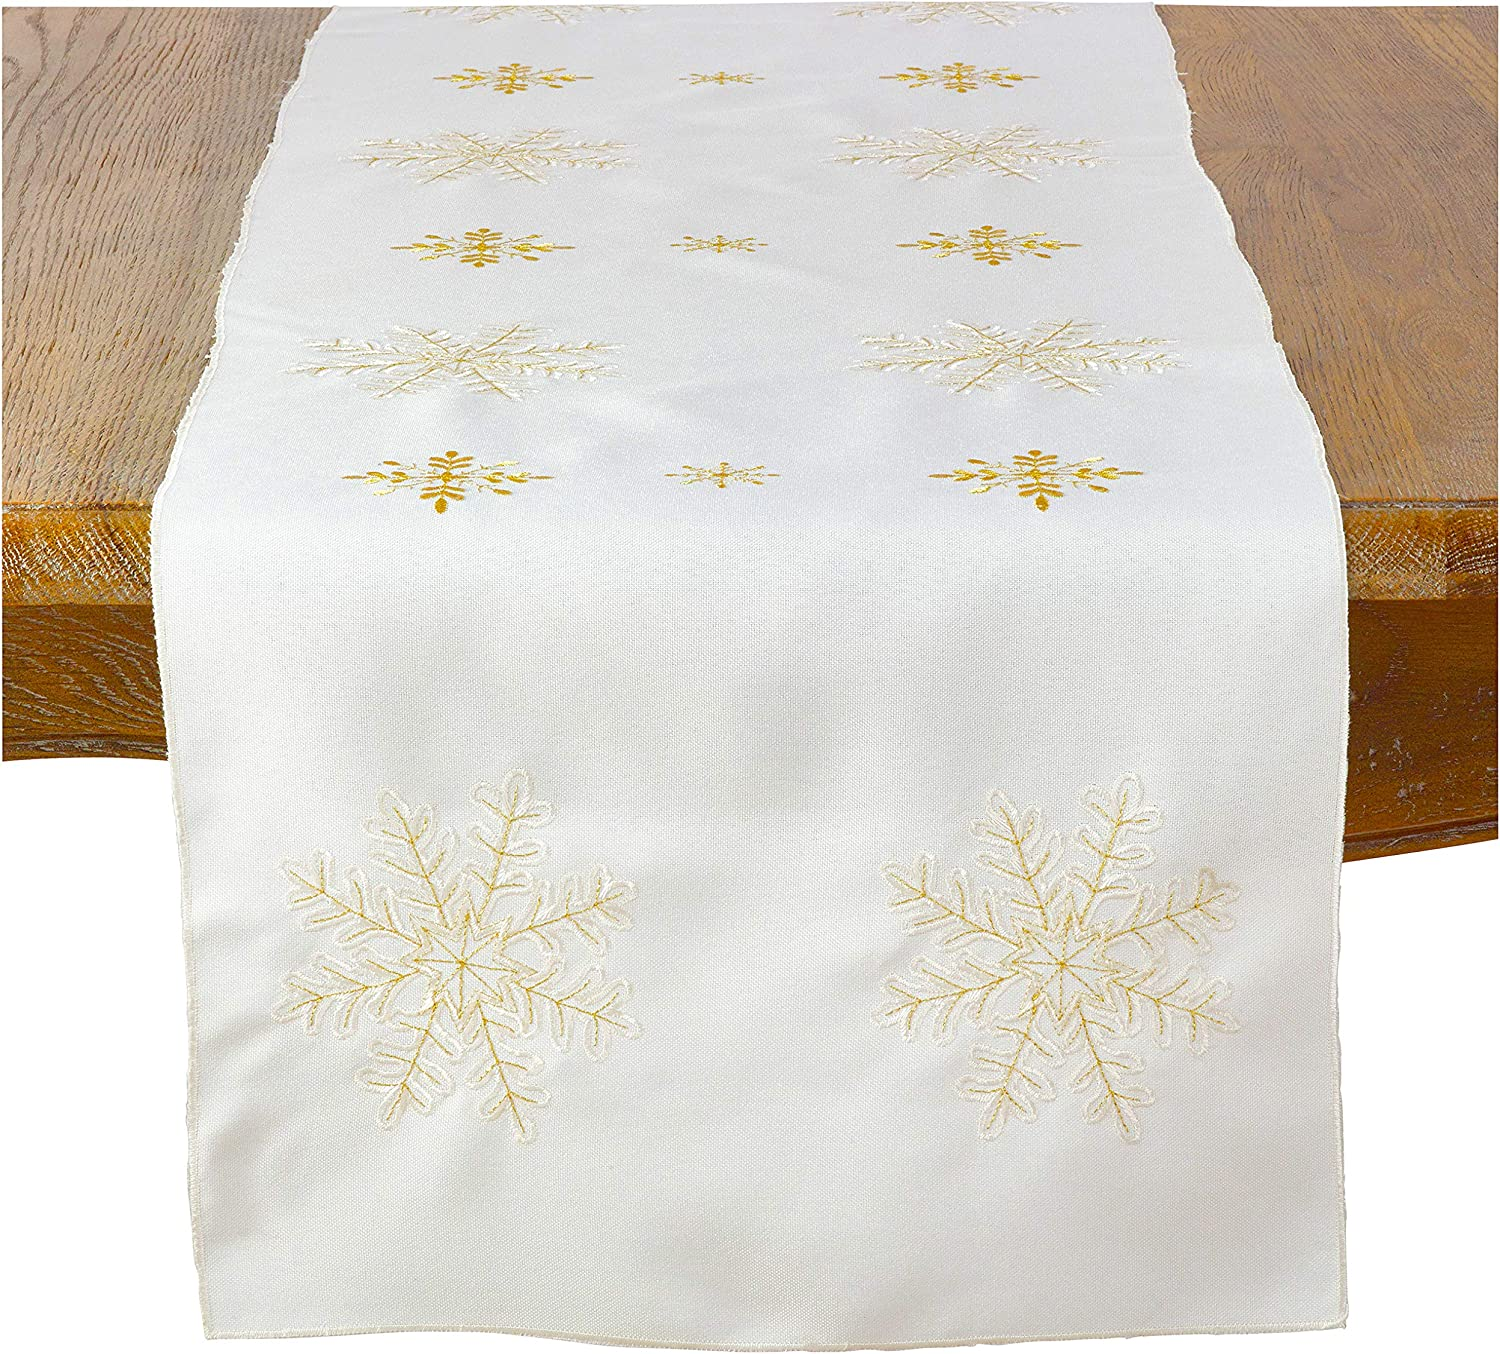 Occasion Gallery Max 54% OFF Ivory Winter Table Christmas Safety and trust Holiday Snowflake